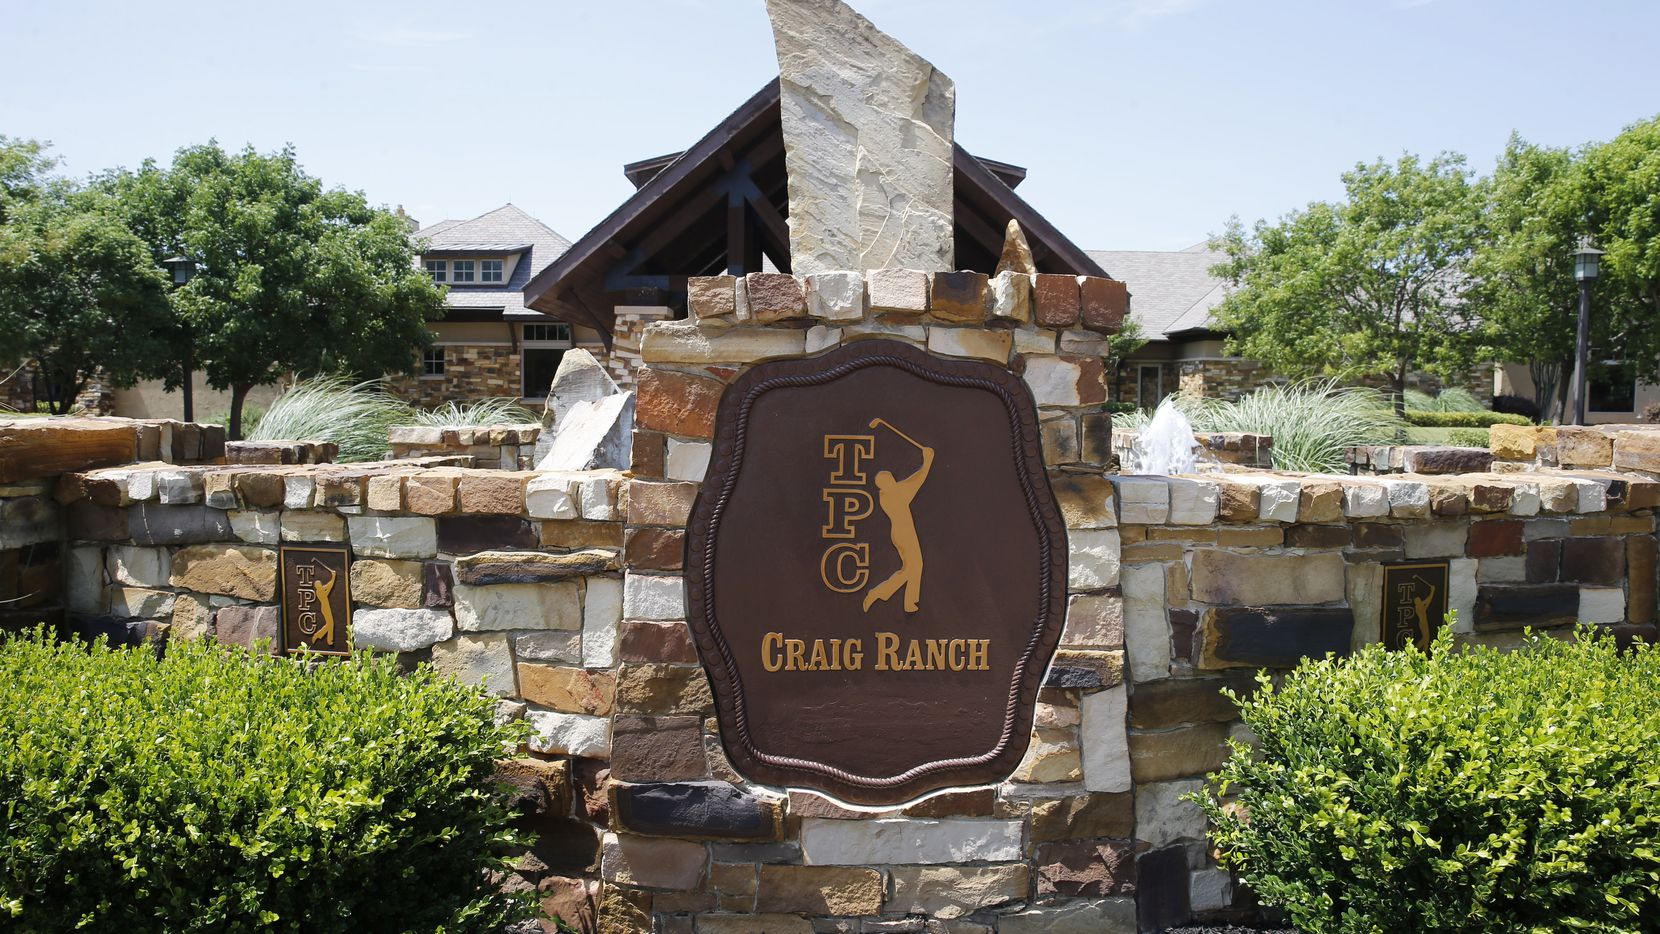 TPC Craig Ranch, the new home for the Byron Nelson golf tournament in McKinney, is pictured here on Thursday, May 7, 2020.